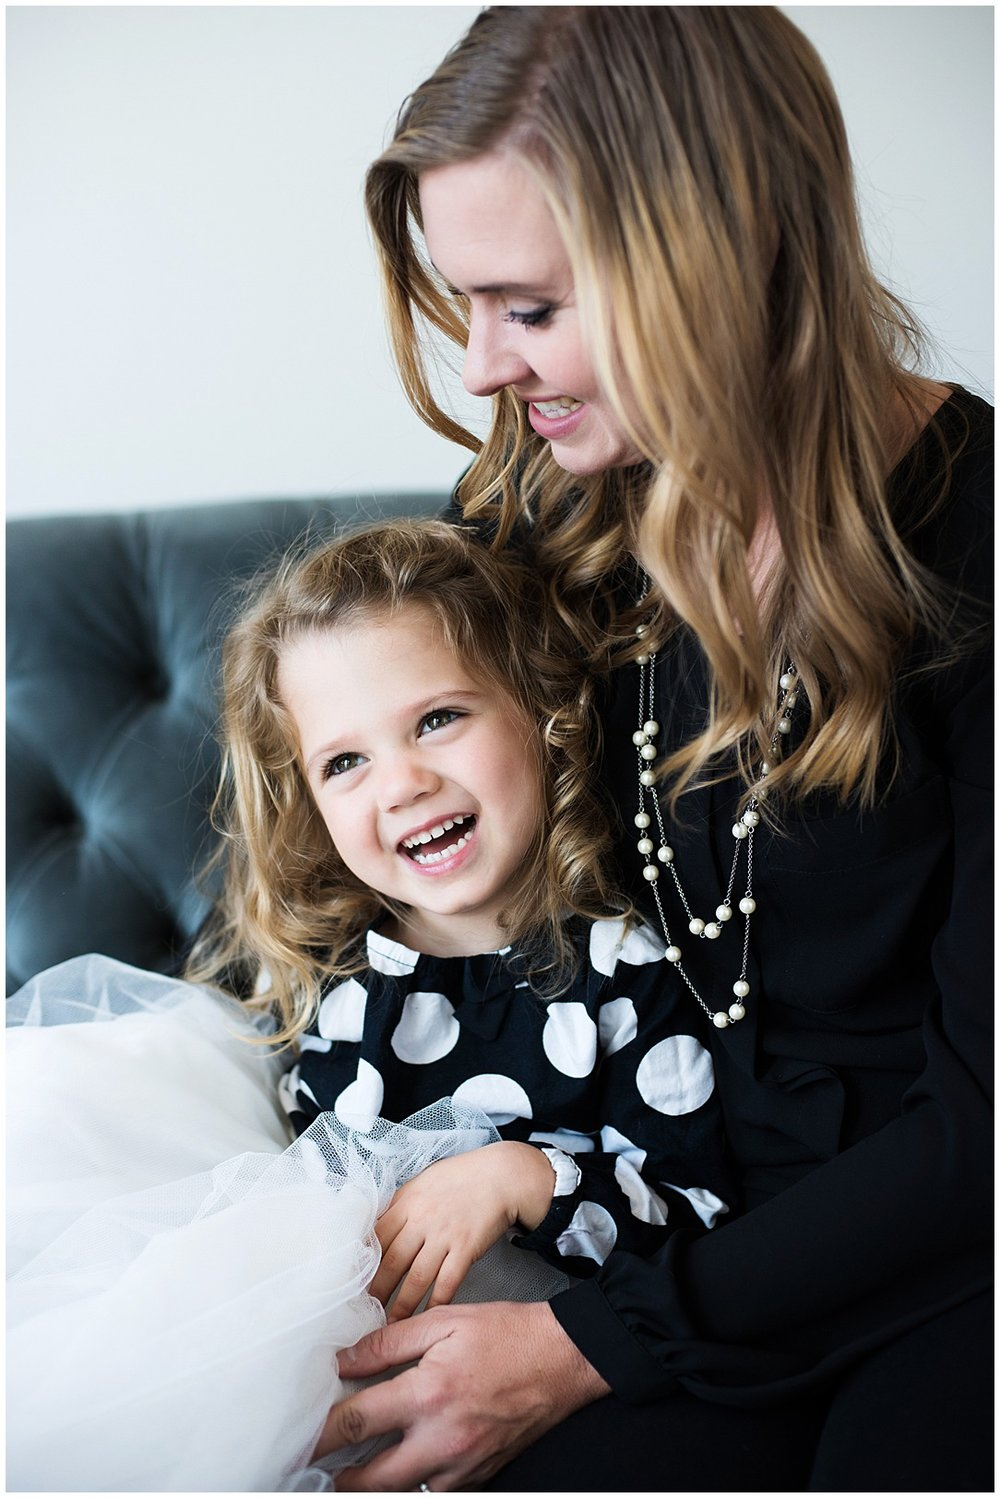 Tessa_marie_photography_family_portrait_photographer_mother_daughter_family_sessions_timeless_elegance_Vogue_magazine_style_portraits_contemporary_portraits_0148.jpg